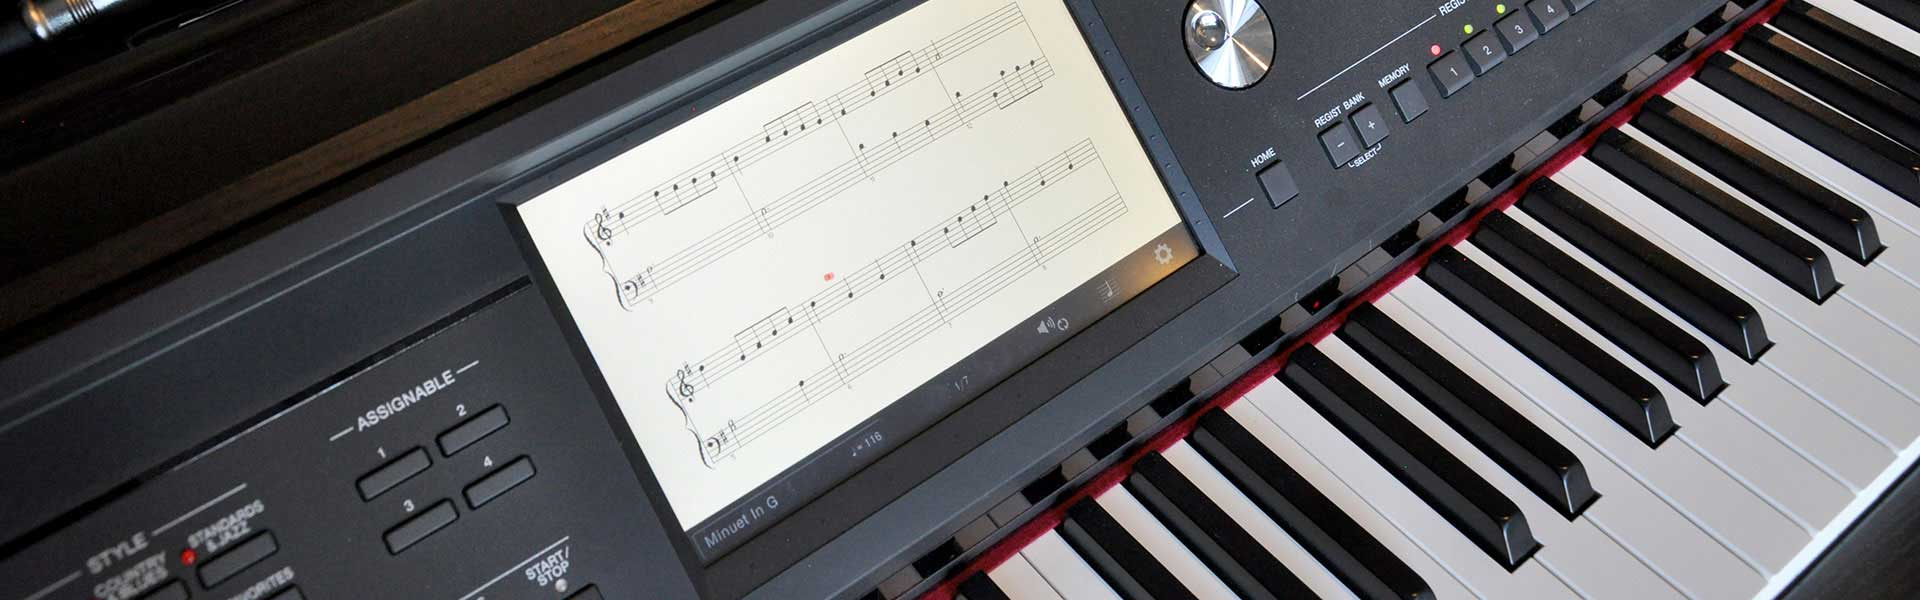 Digital Pianos at Riverton Piano Company